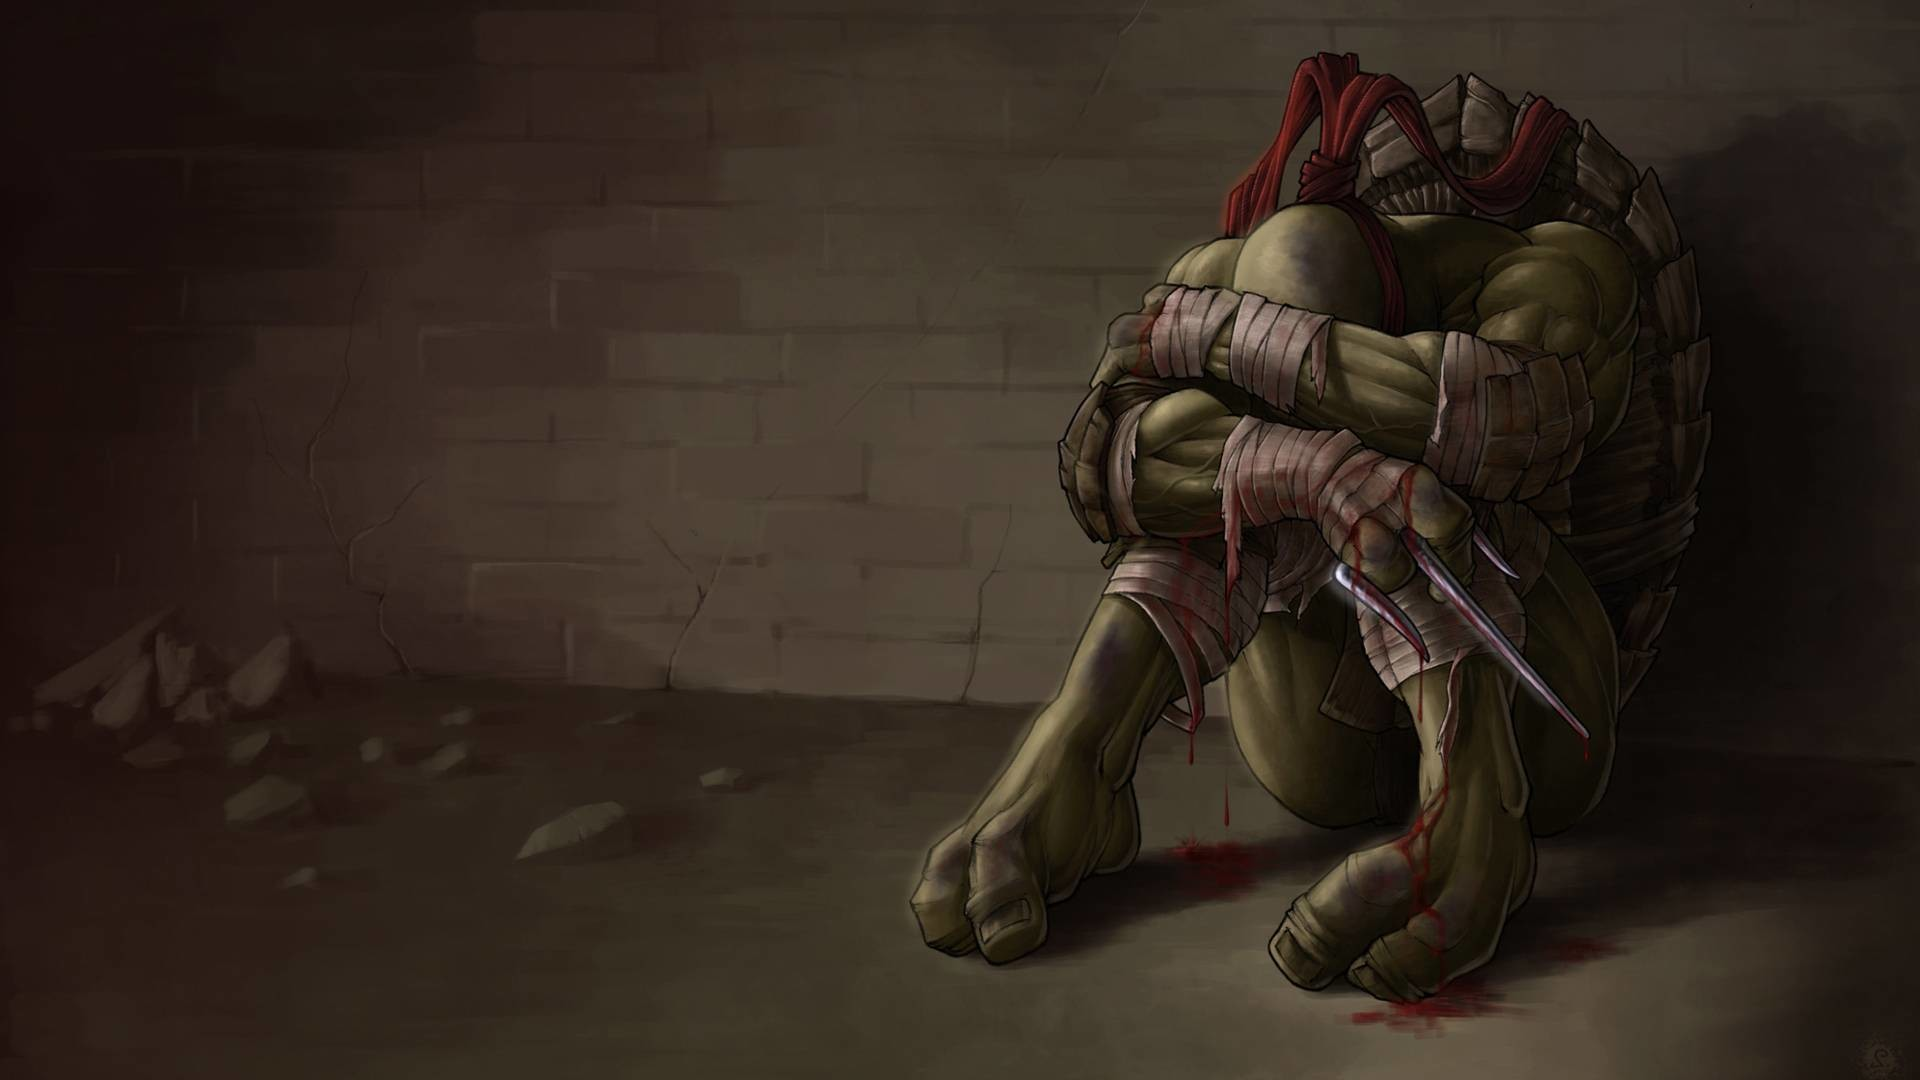 Res: 1920x1080, HQ  px Resolution Teenage Mutant Ninja Turtles - Wallpapers and  Pictures – free download